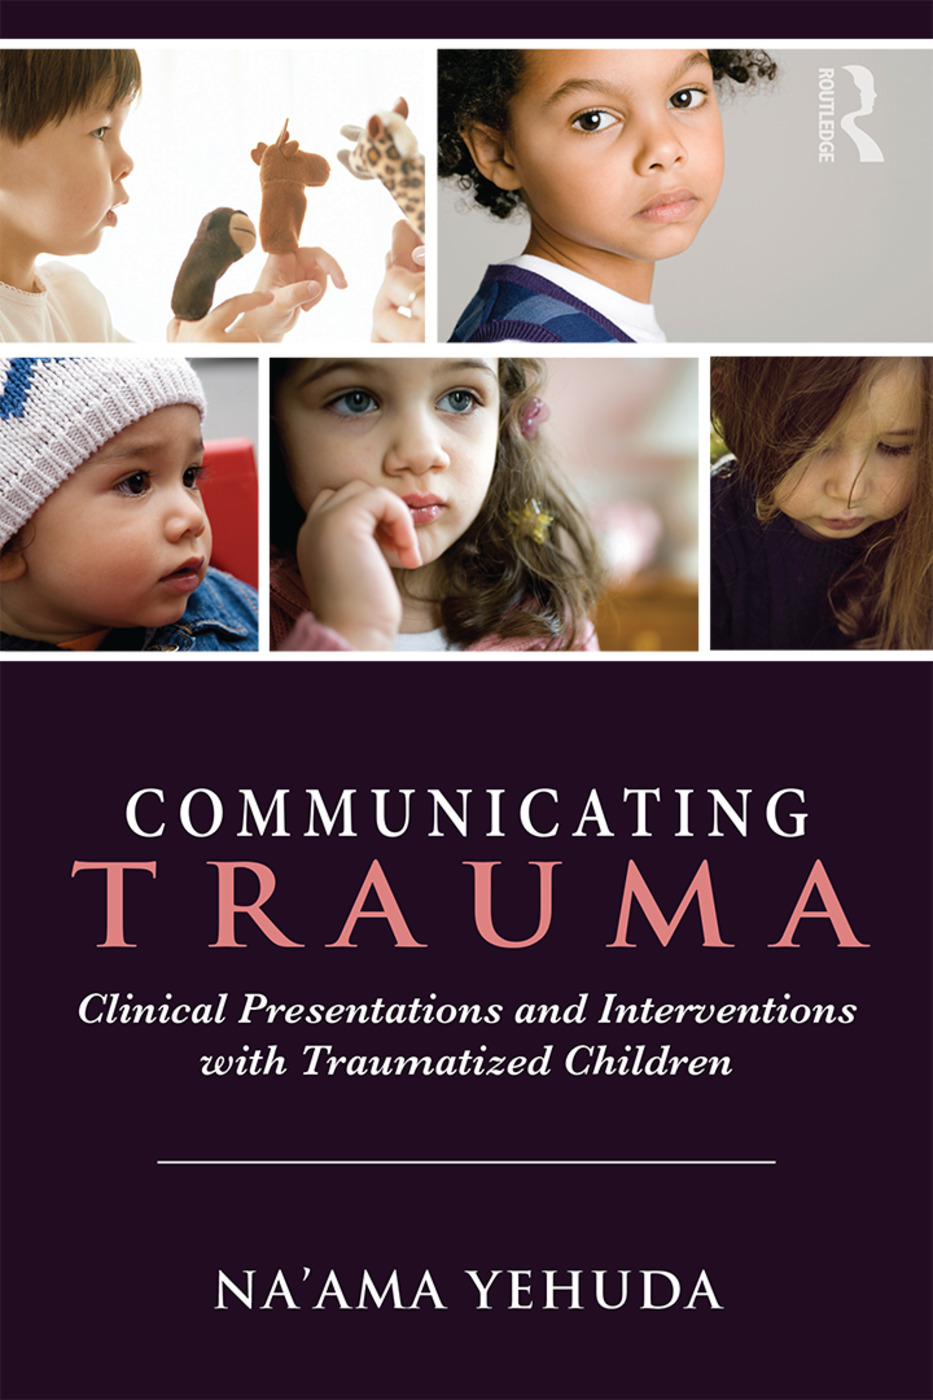 Communicating Trauma: Clinical Presentations and Interventions with Traumatized Children book cover